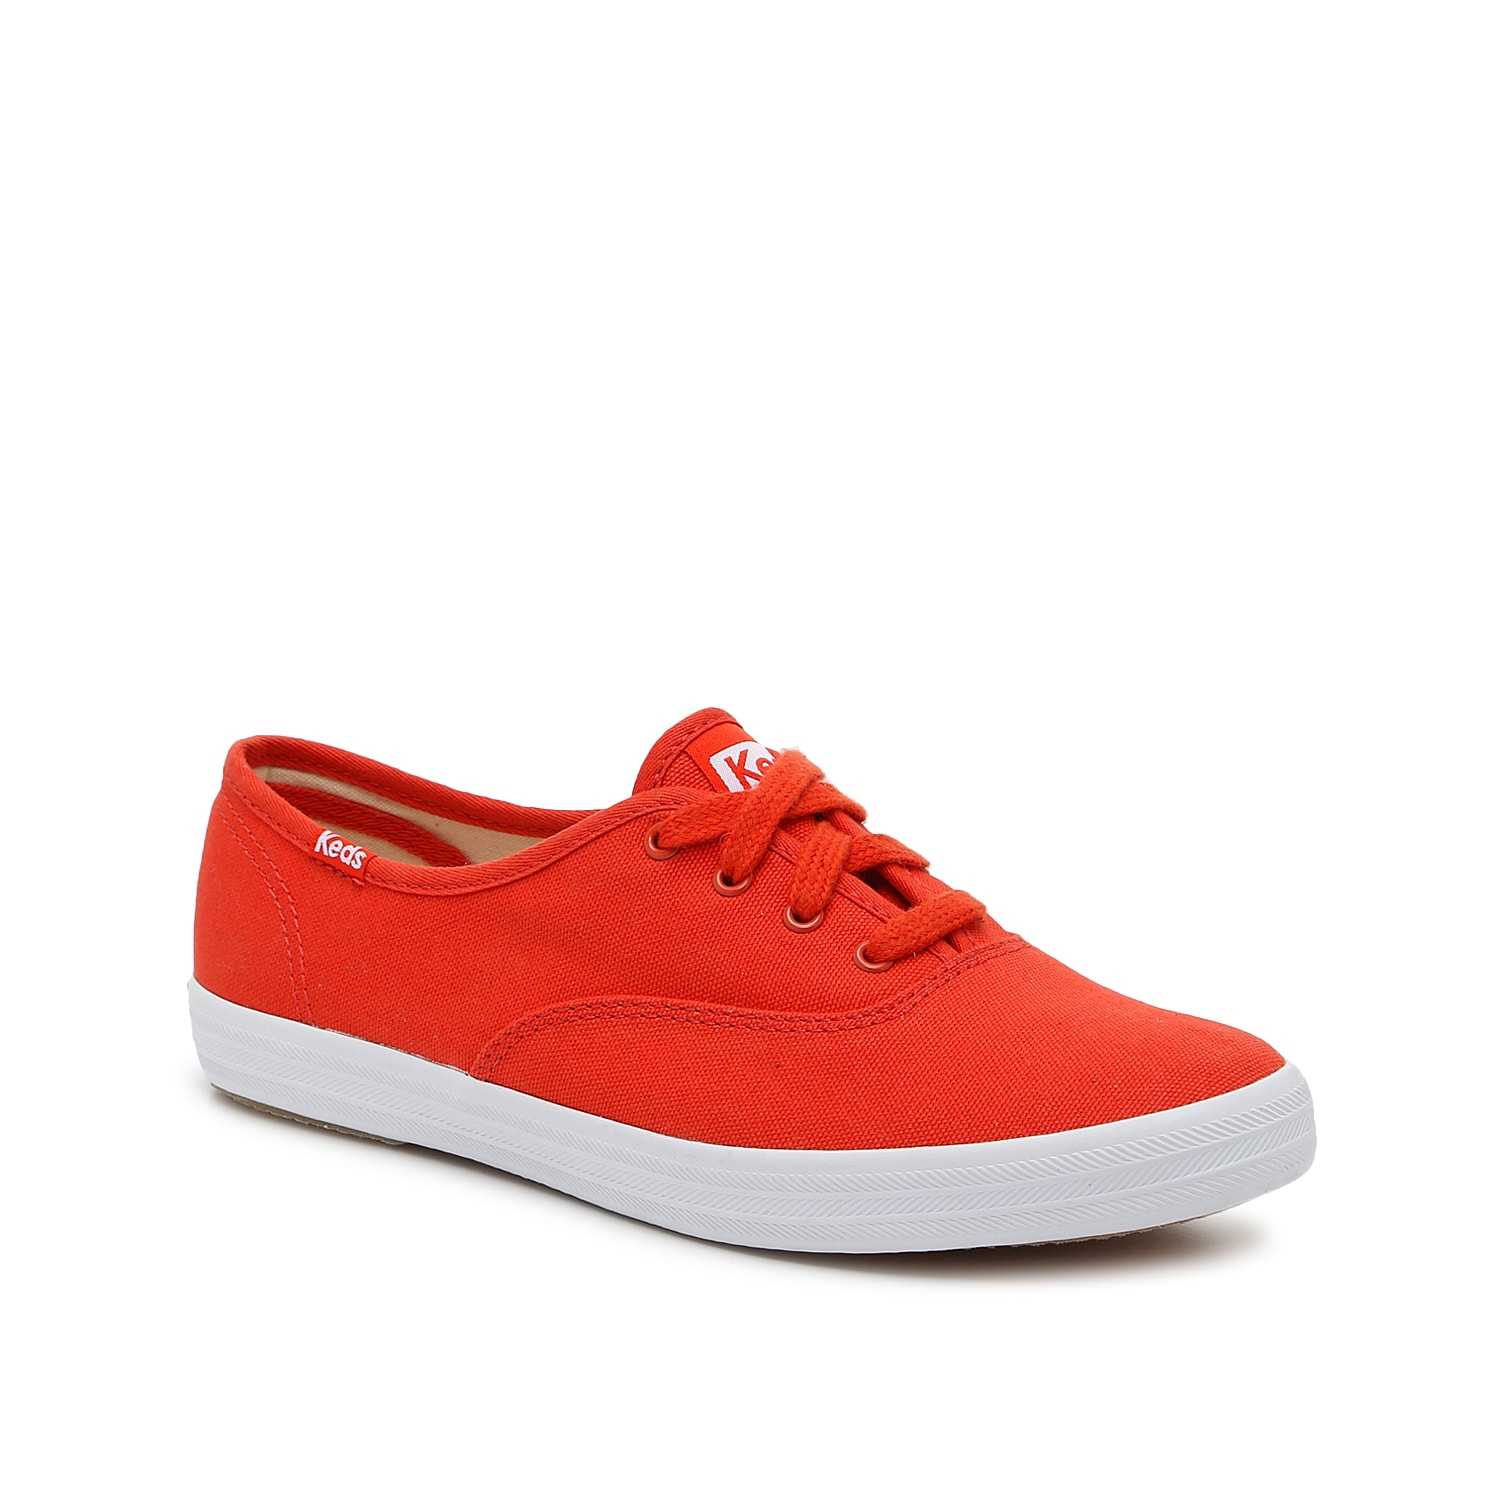 As the quintessential low-top that everyone knows and loves, the women\\\'s Champion from Keds is a sneaker staple. This classic shoe looks great with everything from jeans to skirts.